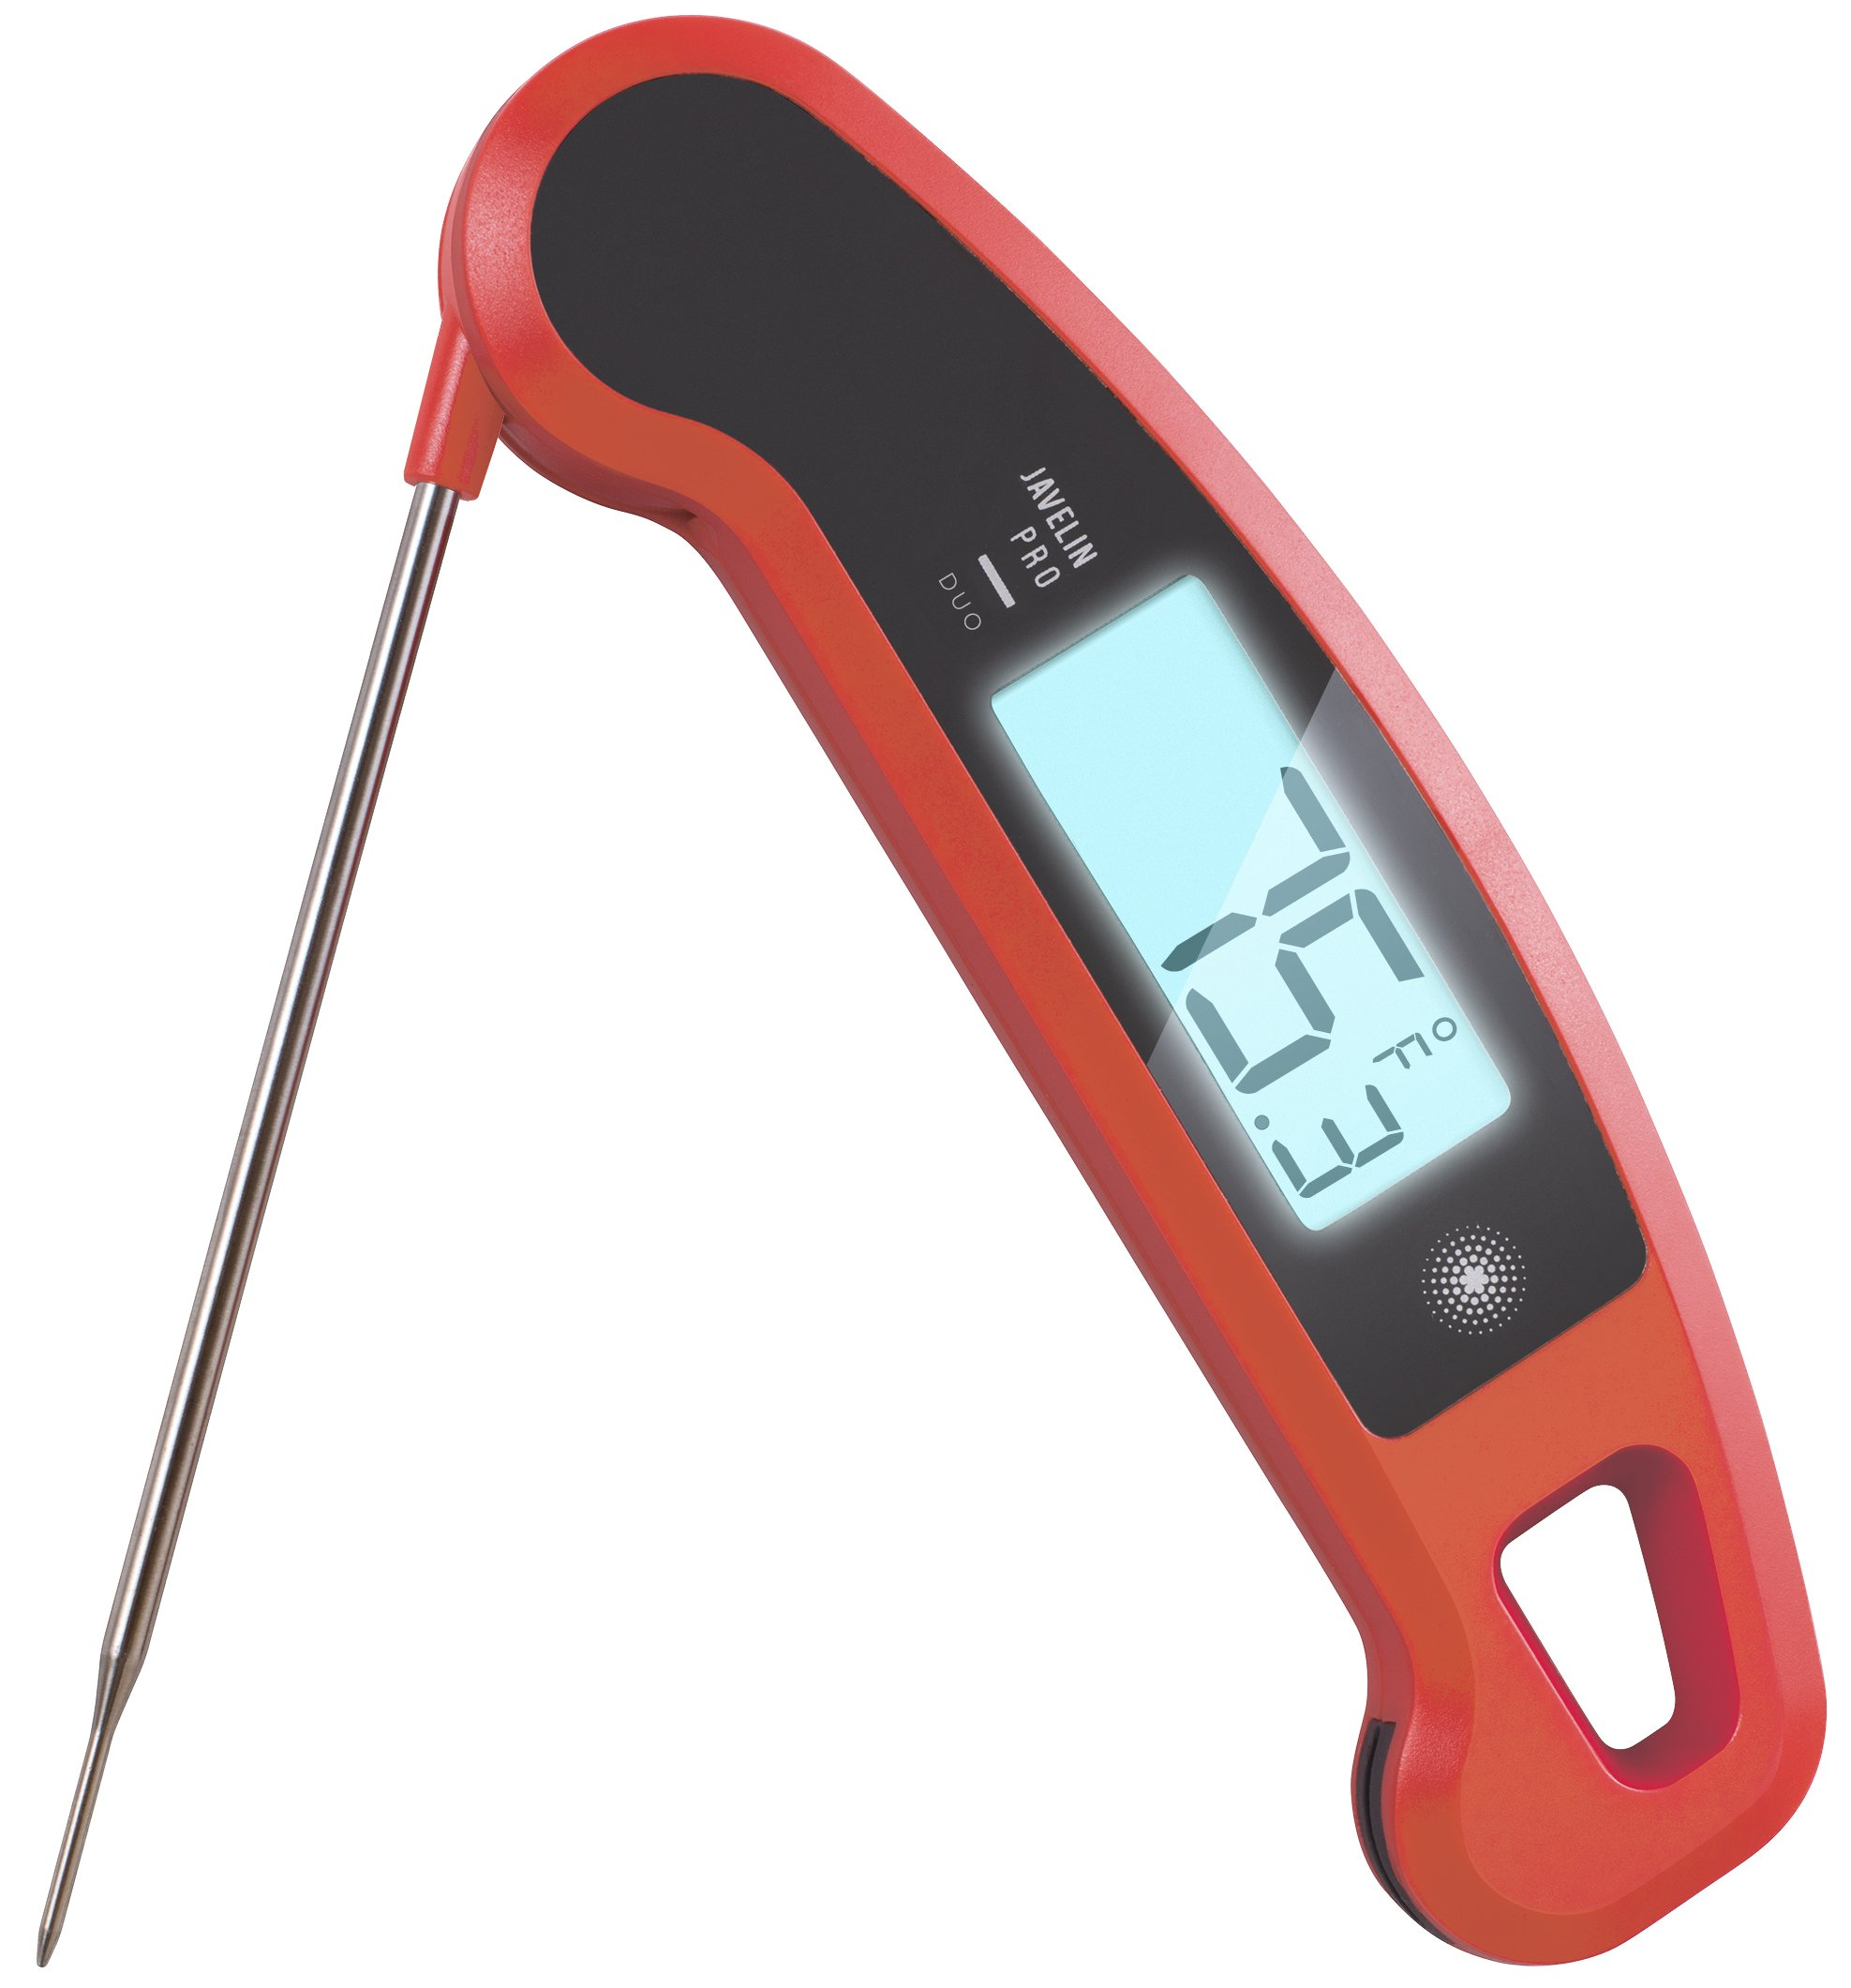 Lavatools Javelin PRO Duo Ambidextrous Backlit Instant Read Digital Meat Thermometer (Chipotle) by Lavatools